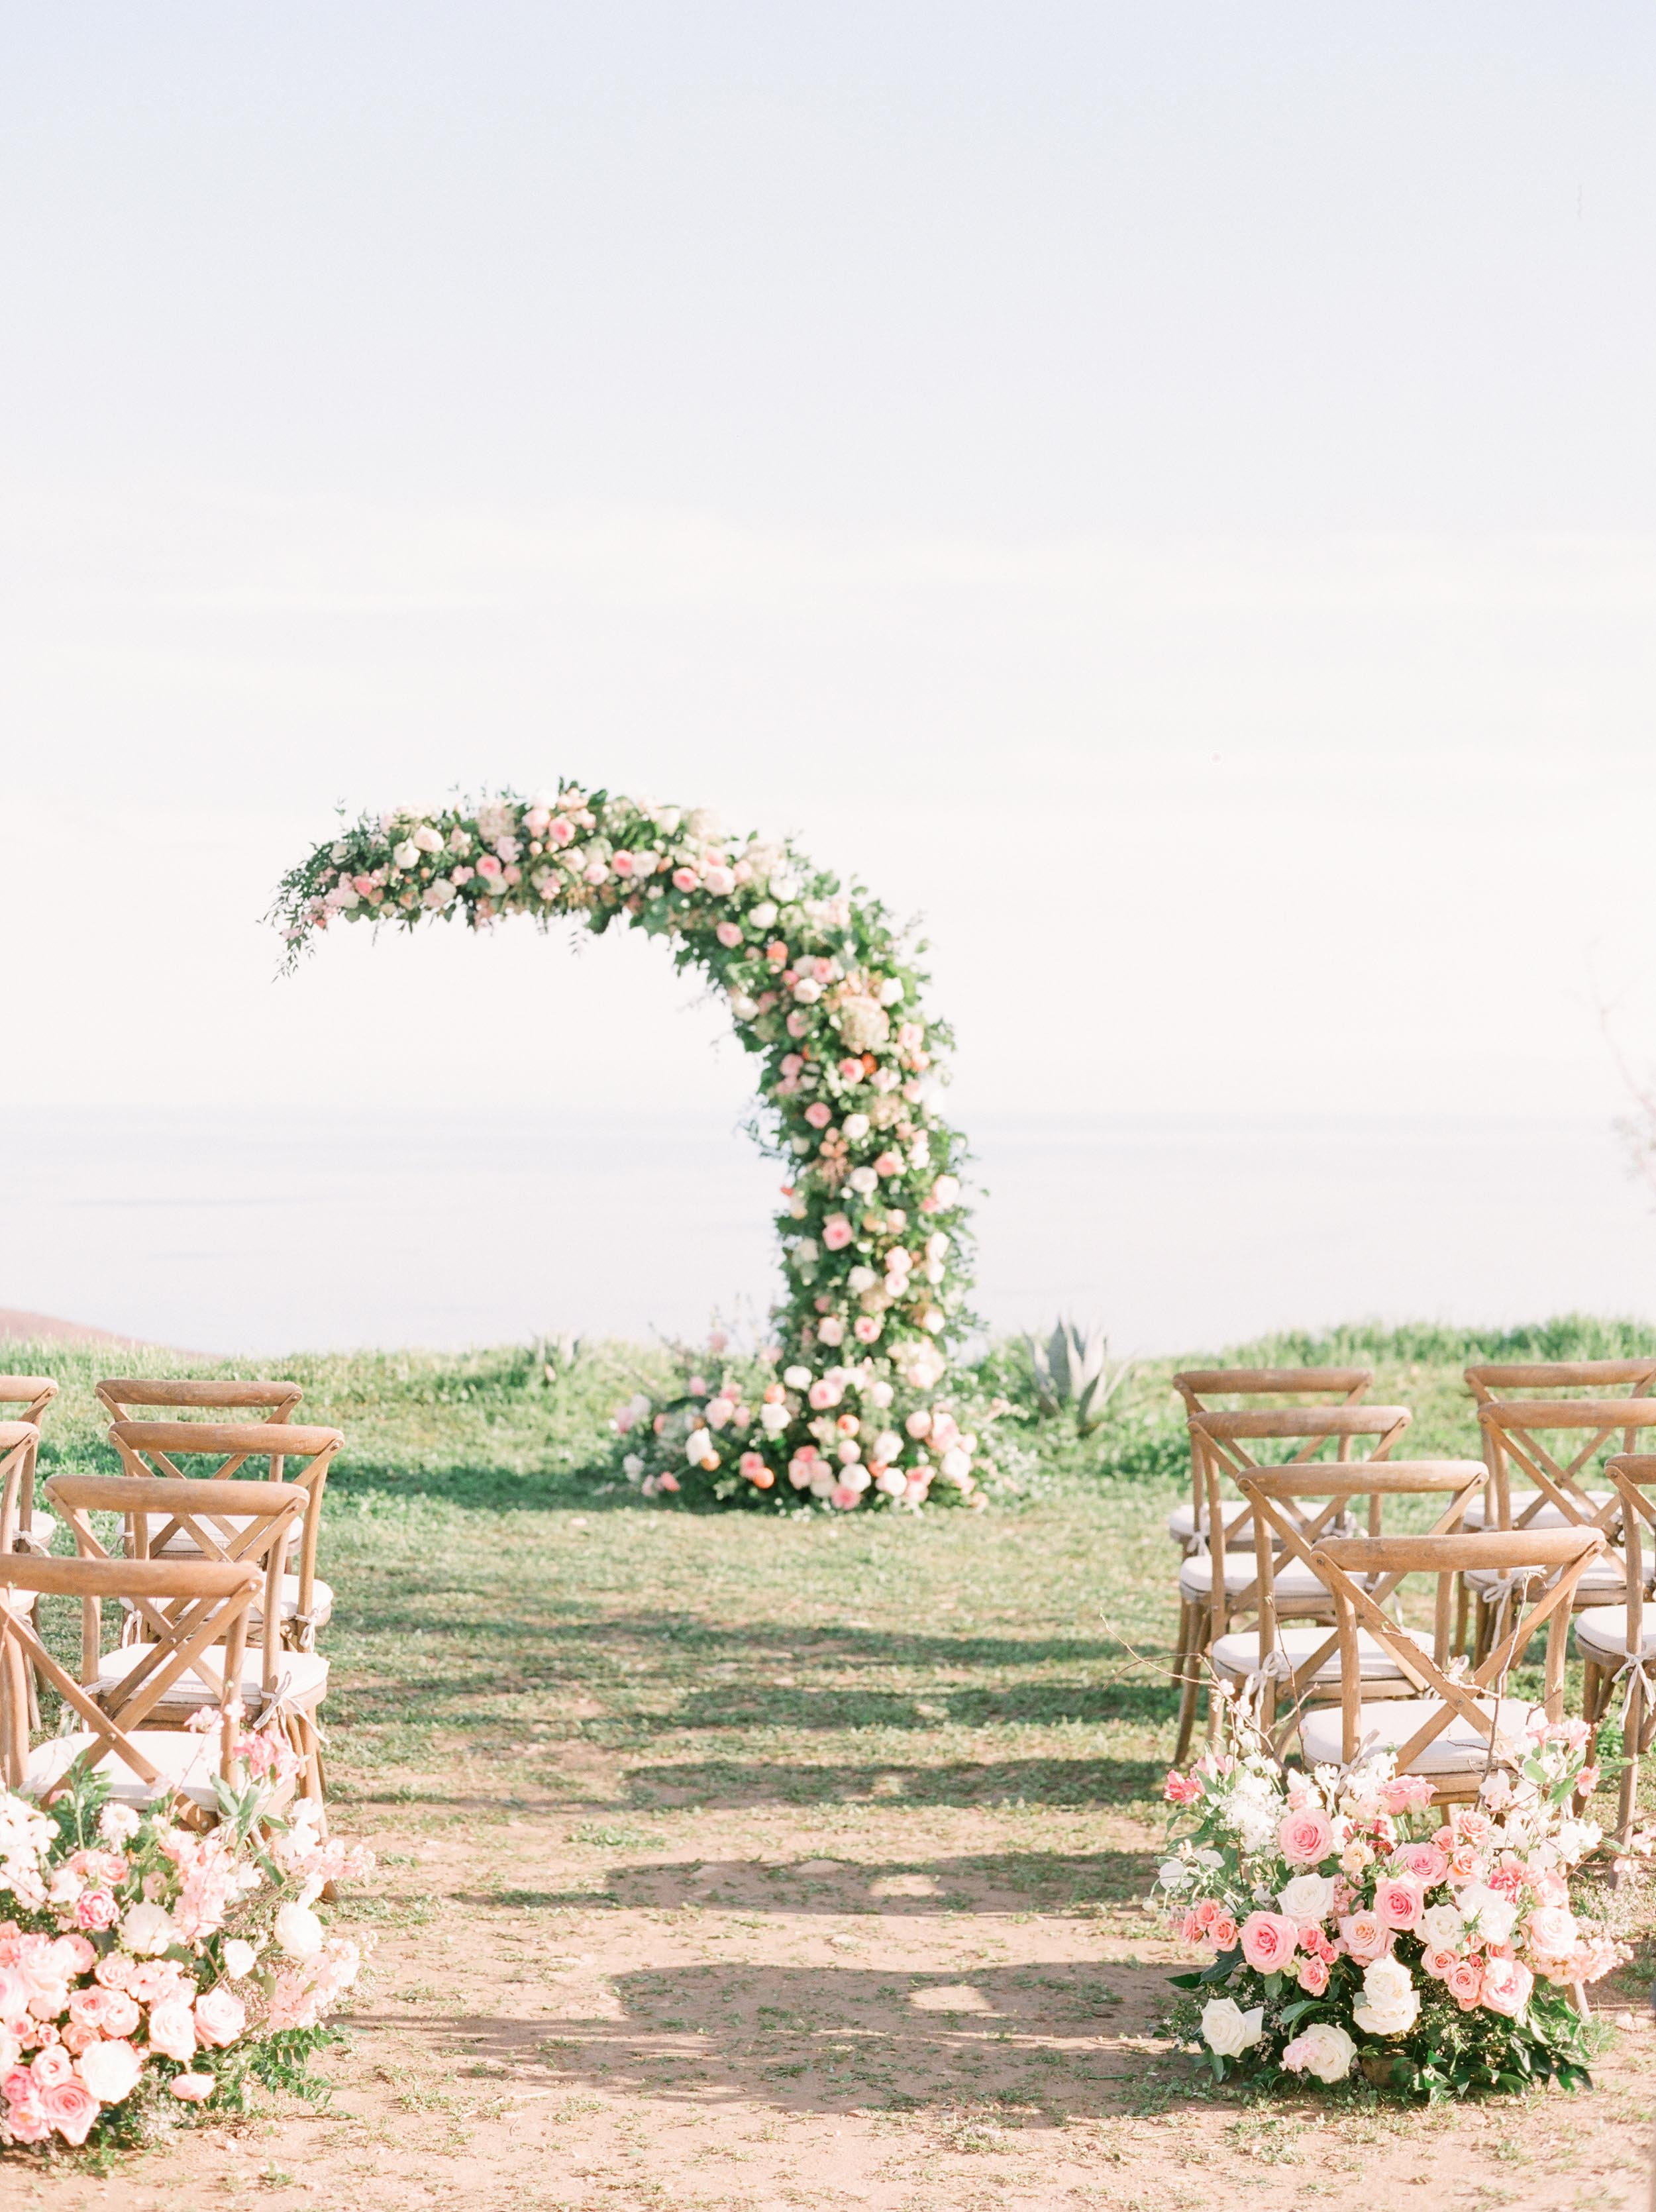 Romantic and light spring wedding on the cliffs of Malibu. Photo by Julie Paisley. Florals by Royal Bee Flower Co. Stationery by Caitlin O'Bryant Design. Venue: Deer Creek Ridge. Planning: Heather Benge Events.